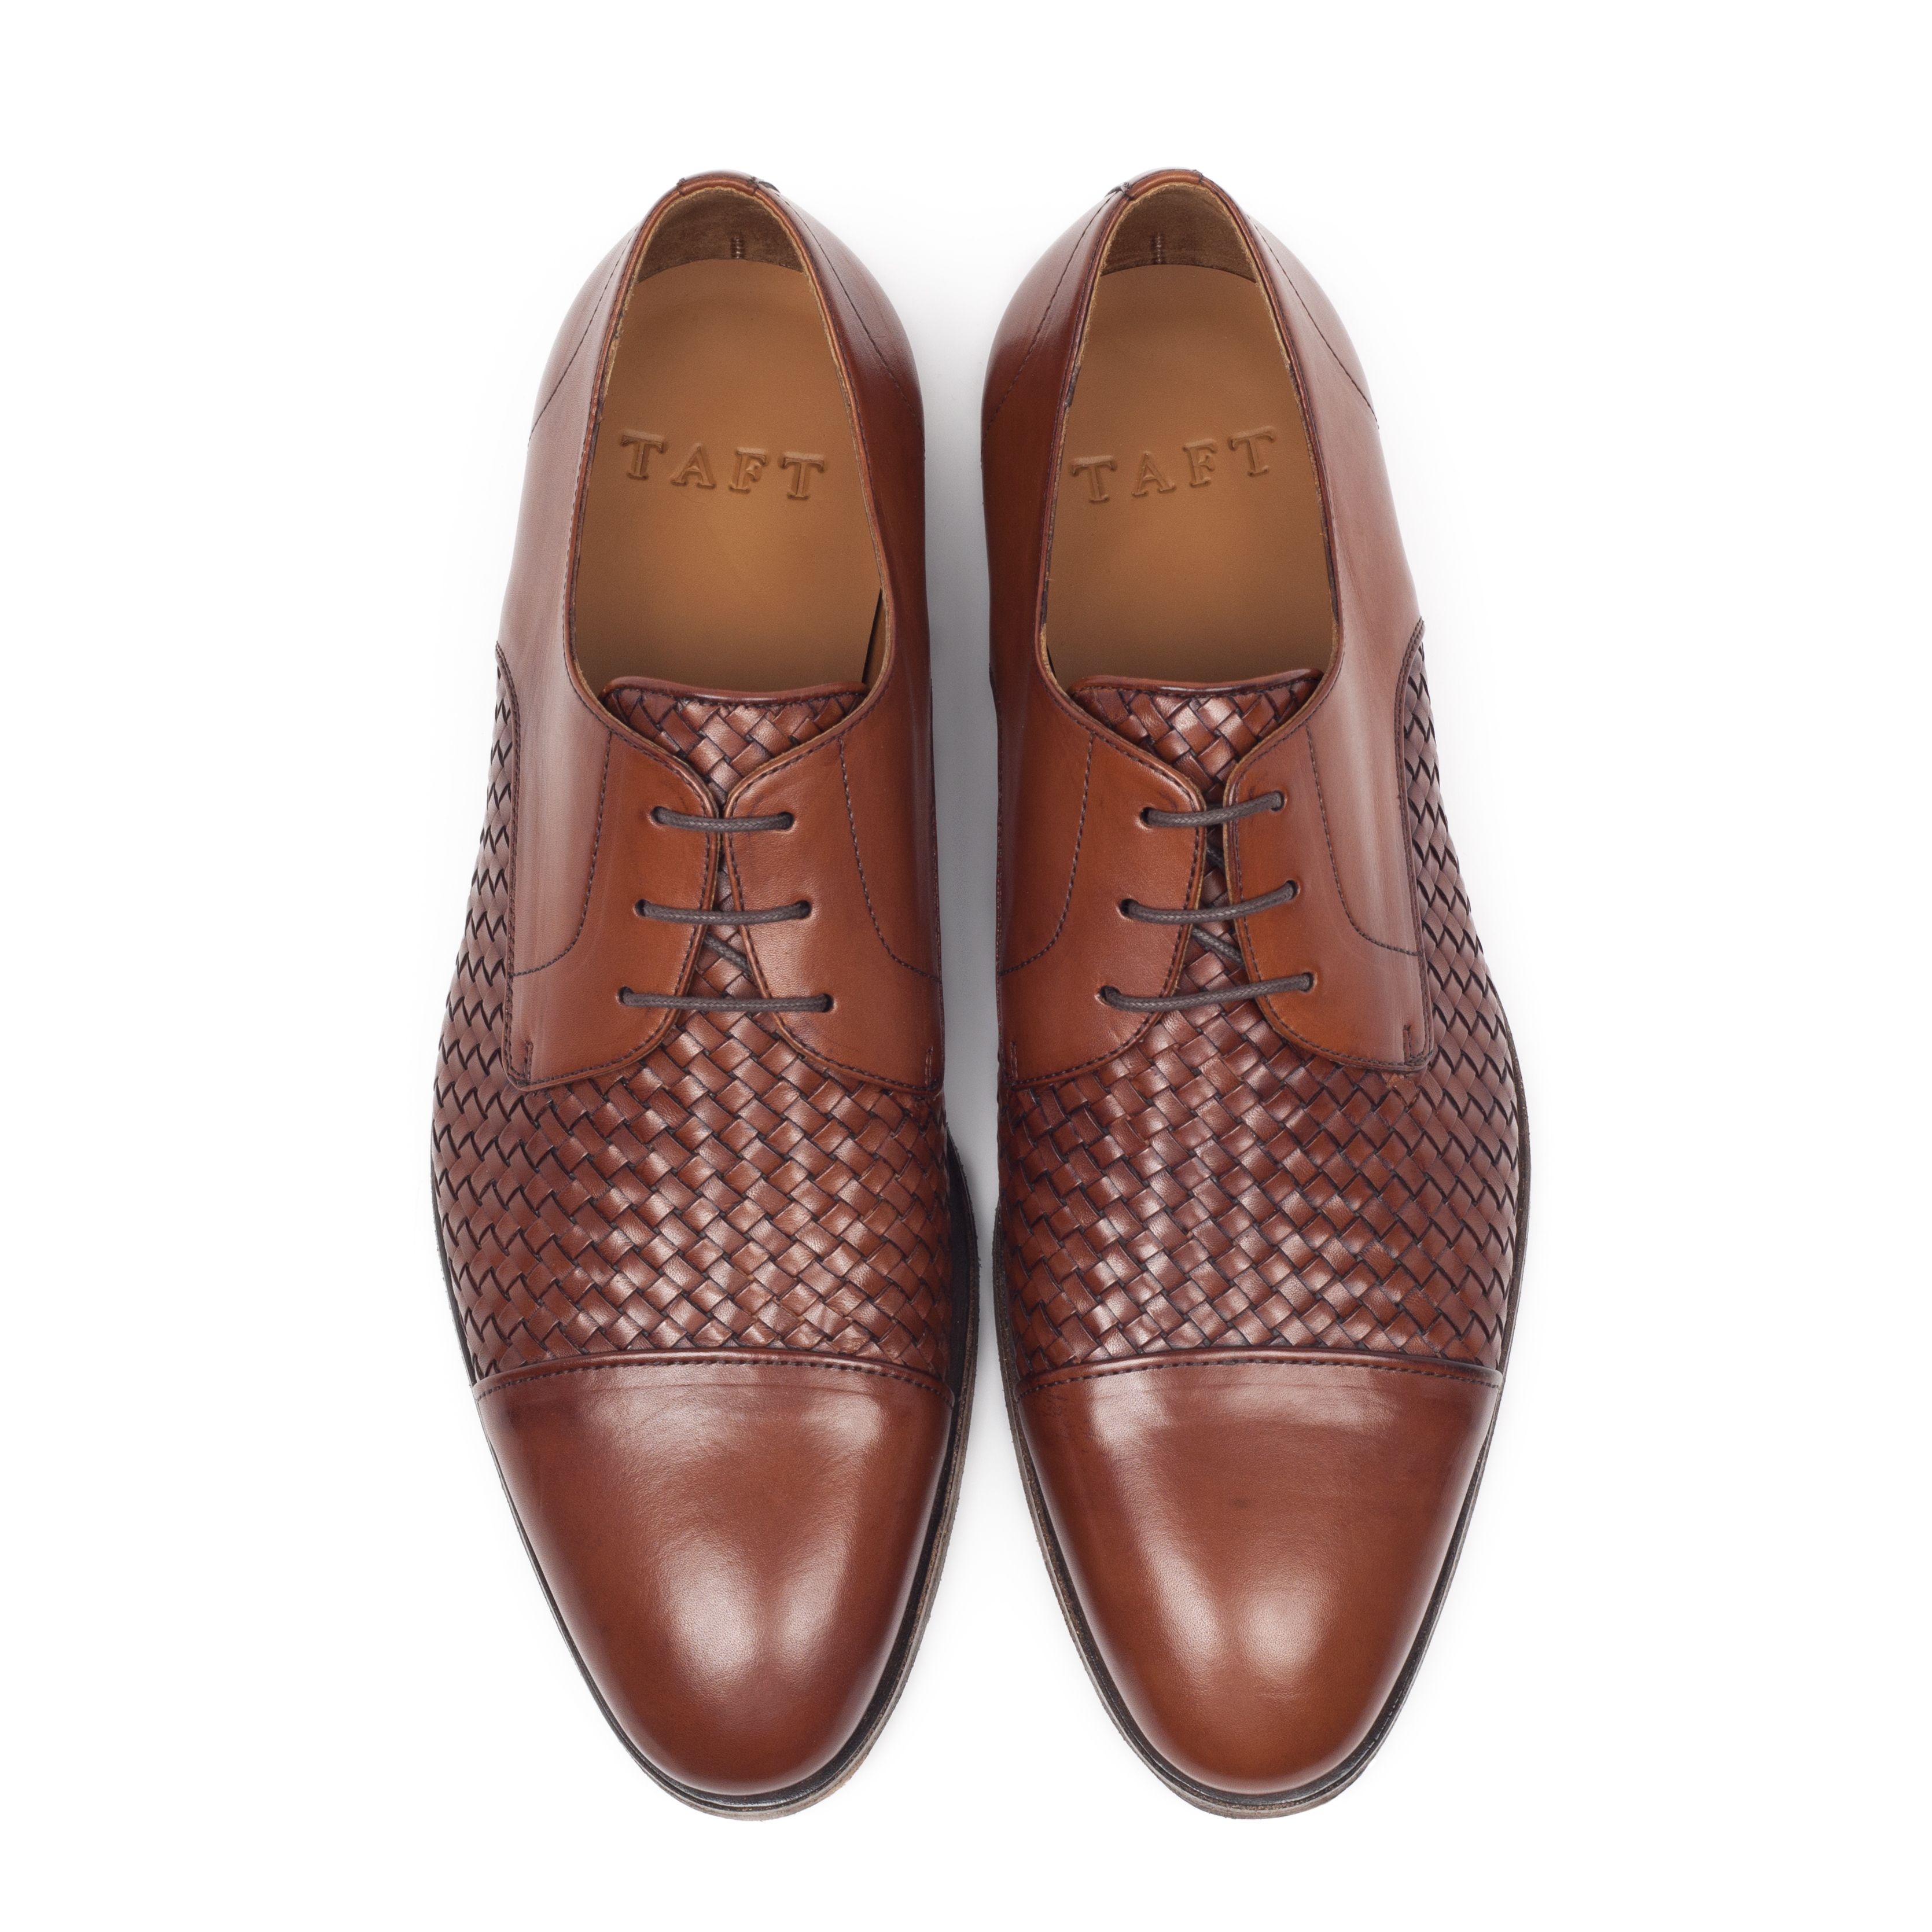 Meet the Lucca in Cognac. This is a captoe lace up with